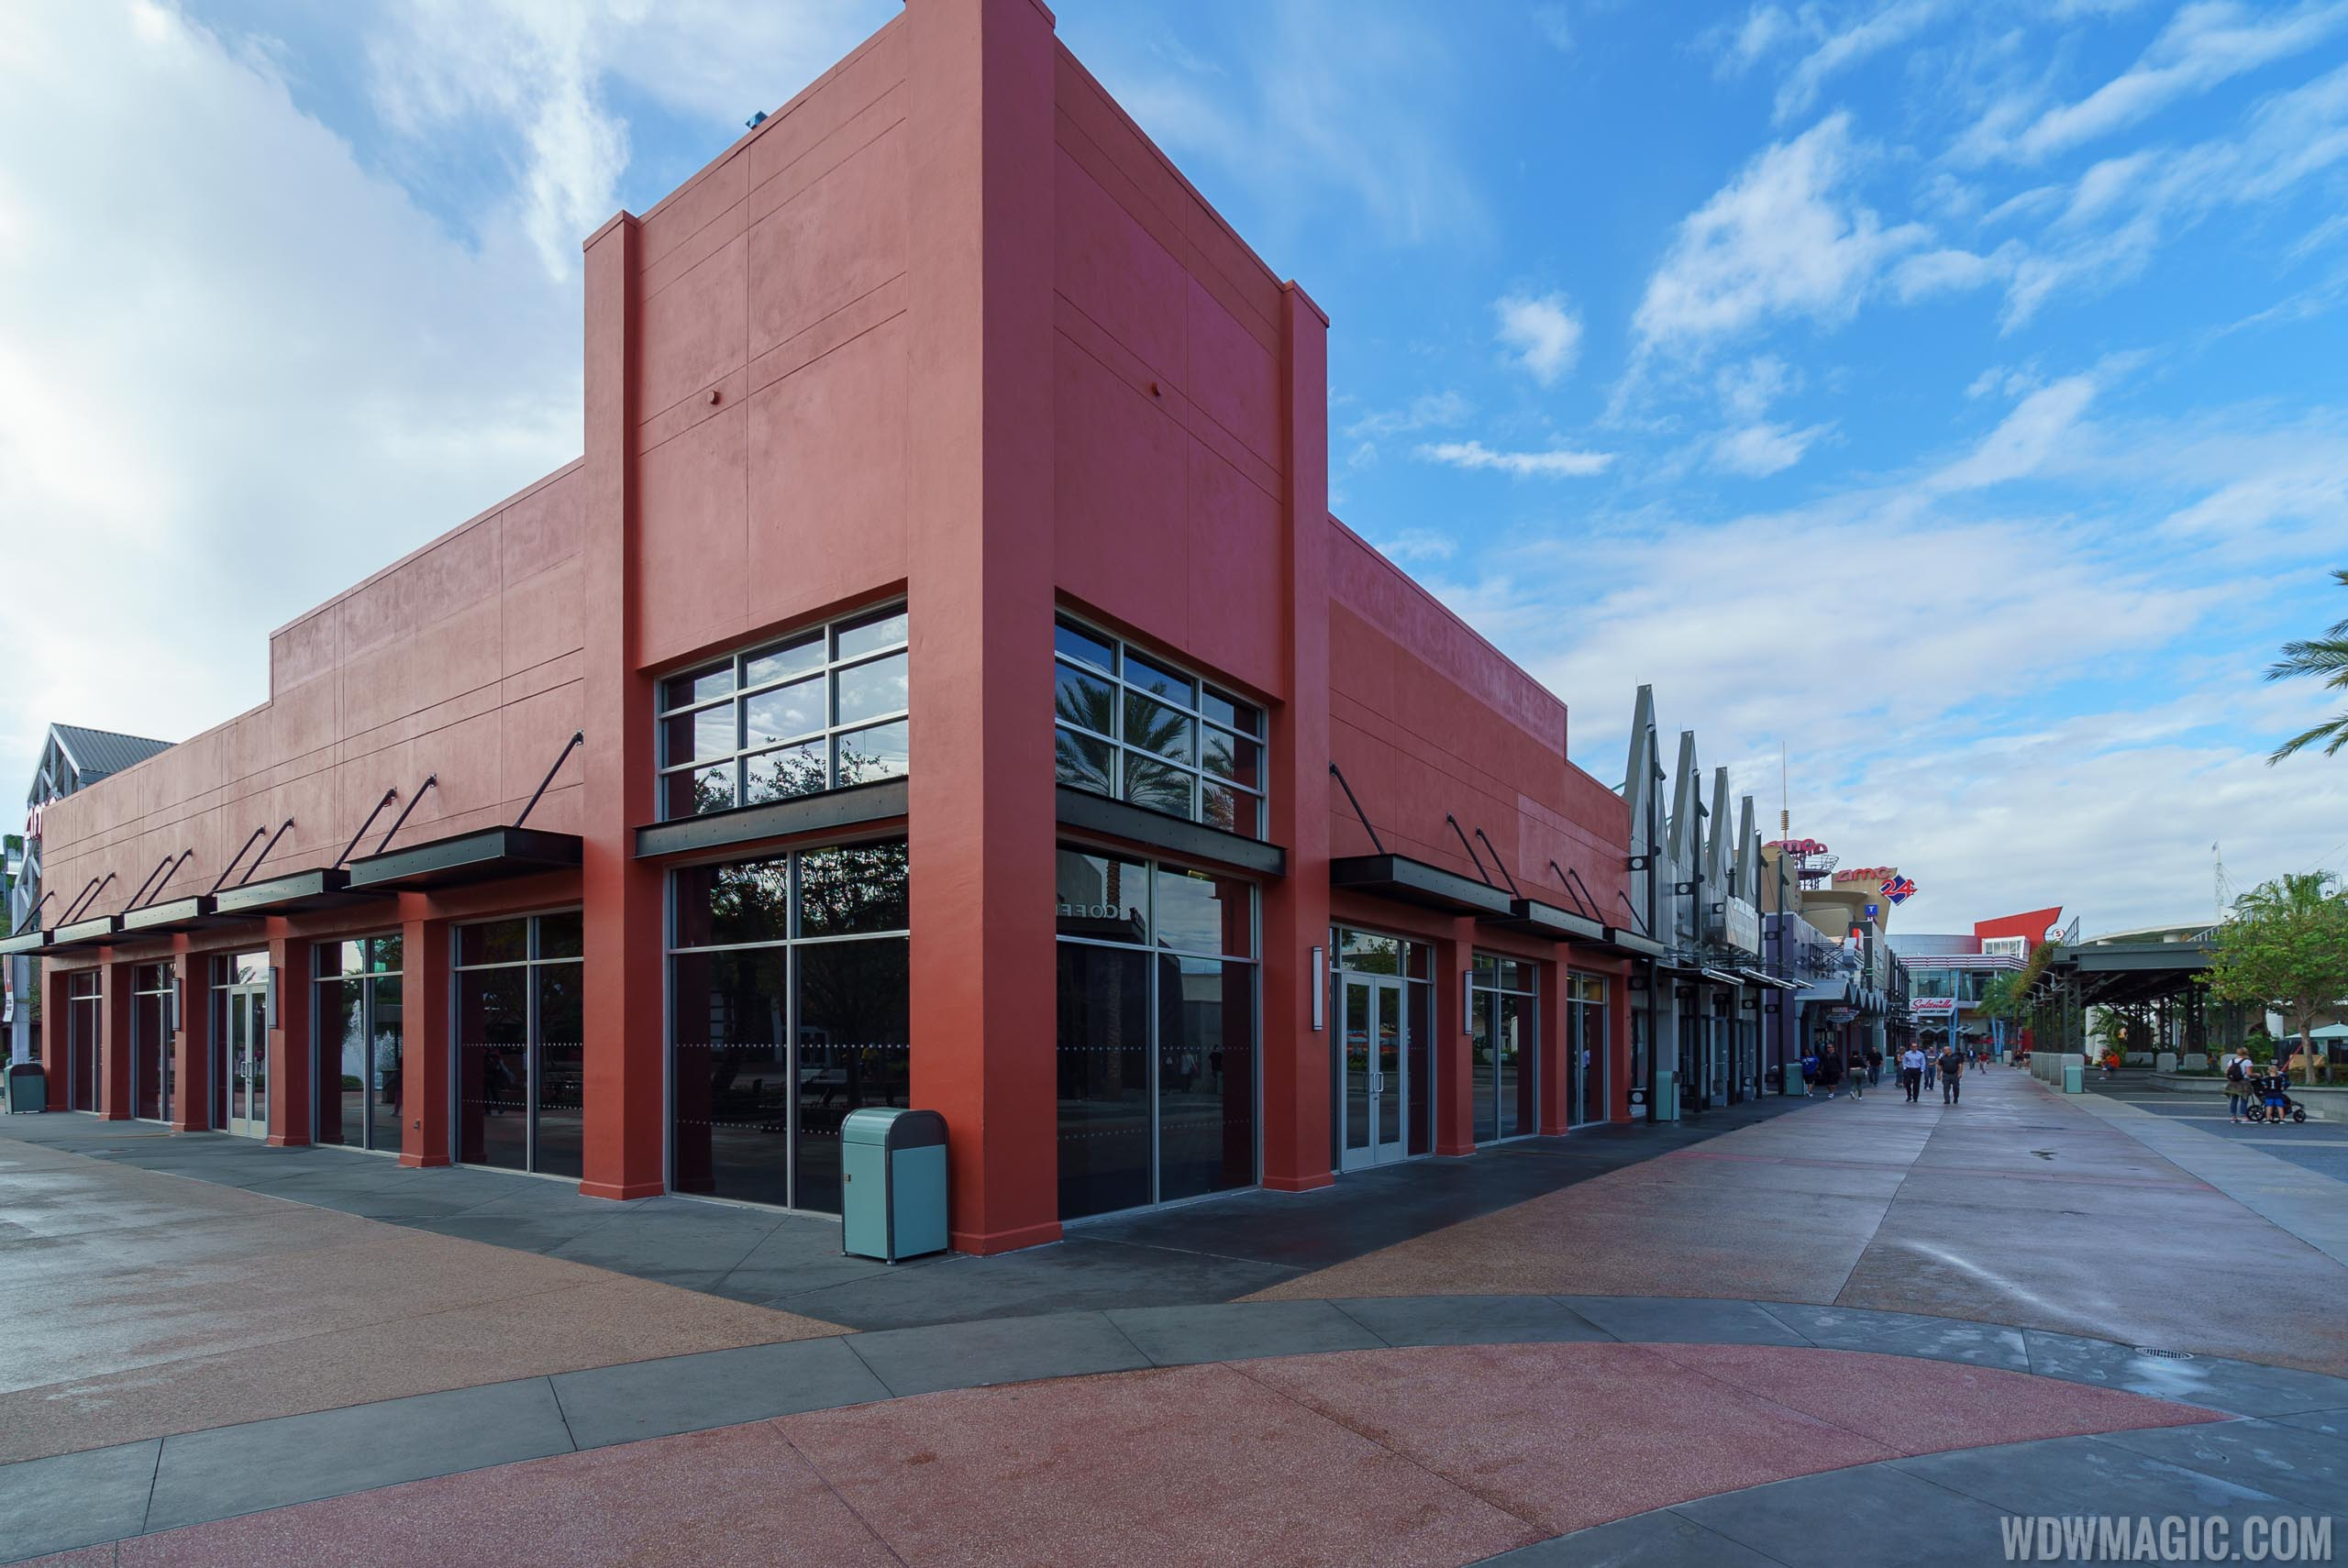 West side Harley-Davidson store is now closed